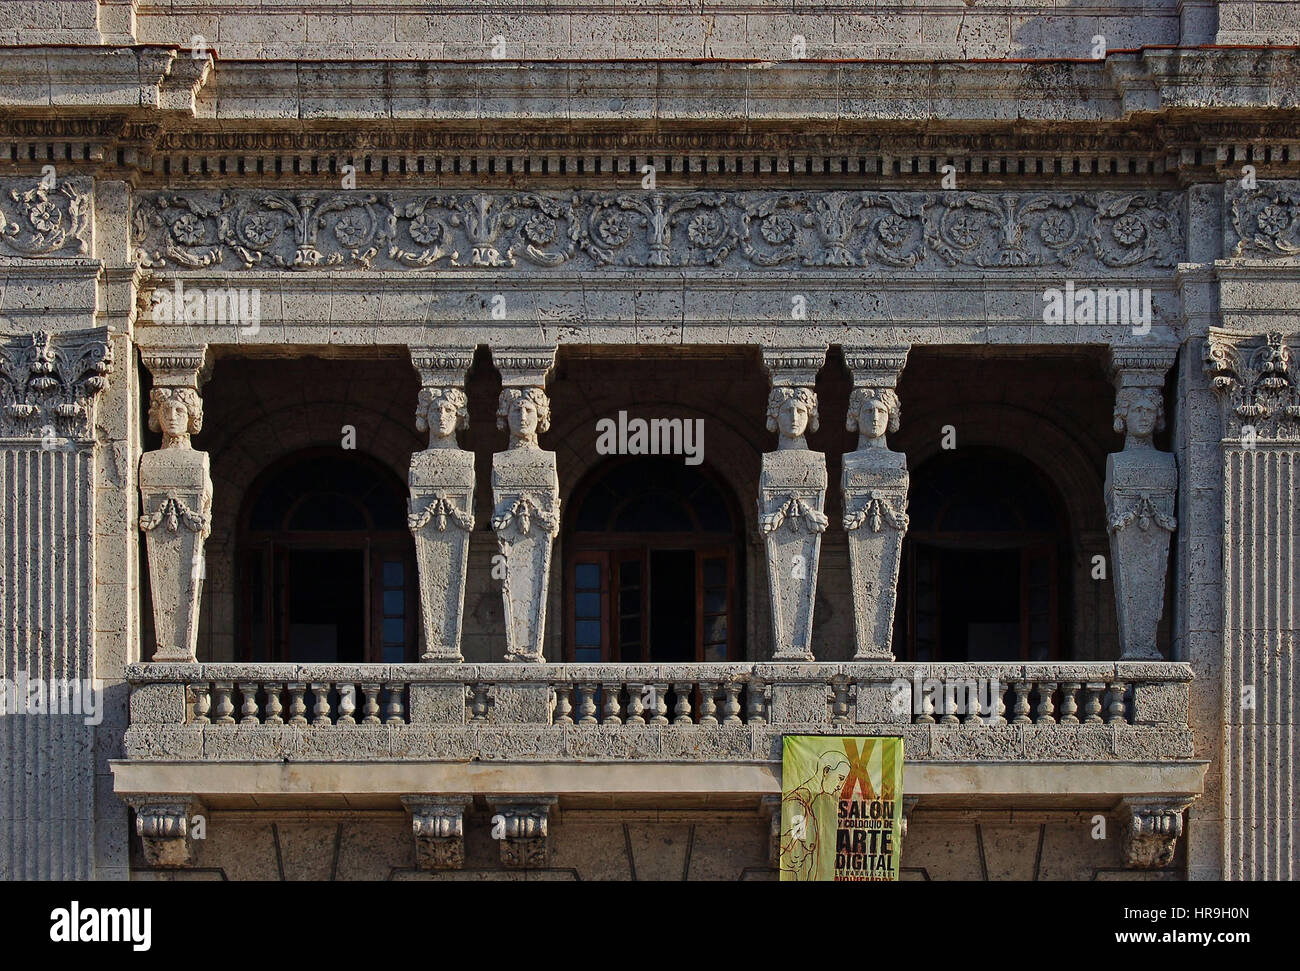 Detail of the Six Caryatid Sculptures on the Caryatid Building.  the Malecon, Havana, Cuba - Stock Image